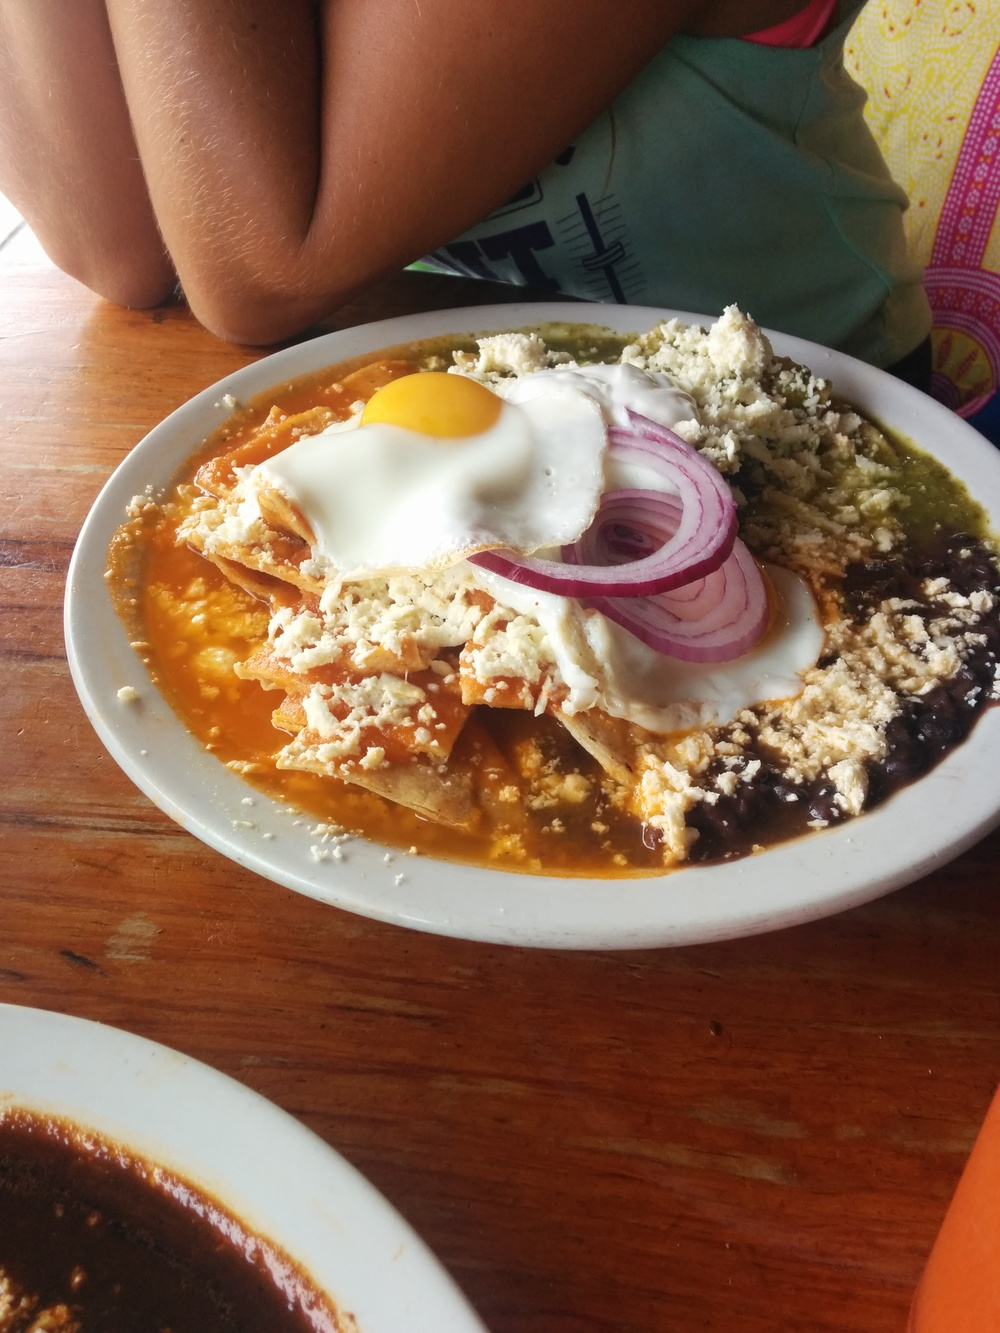 Chilaquiles. Famous for its curative hangover properties. Take day old tortillas, cut into triangles, fry them and serve them in red or green salsa. Top with egg and cheese. ....I can't look at this anymore.